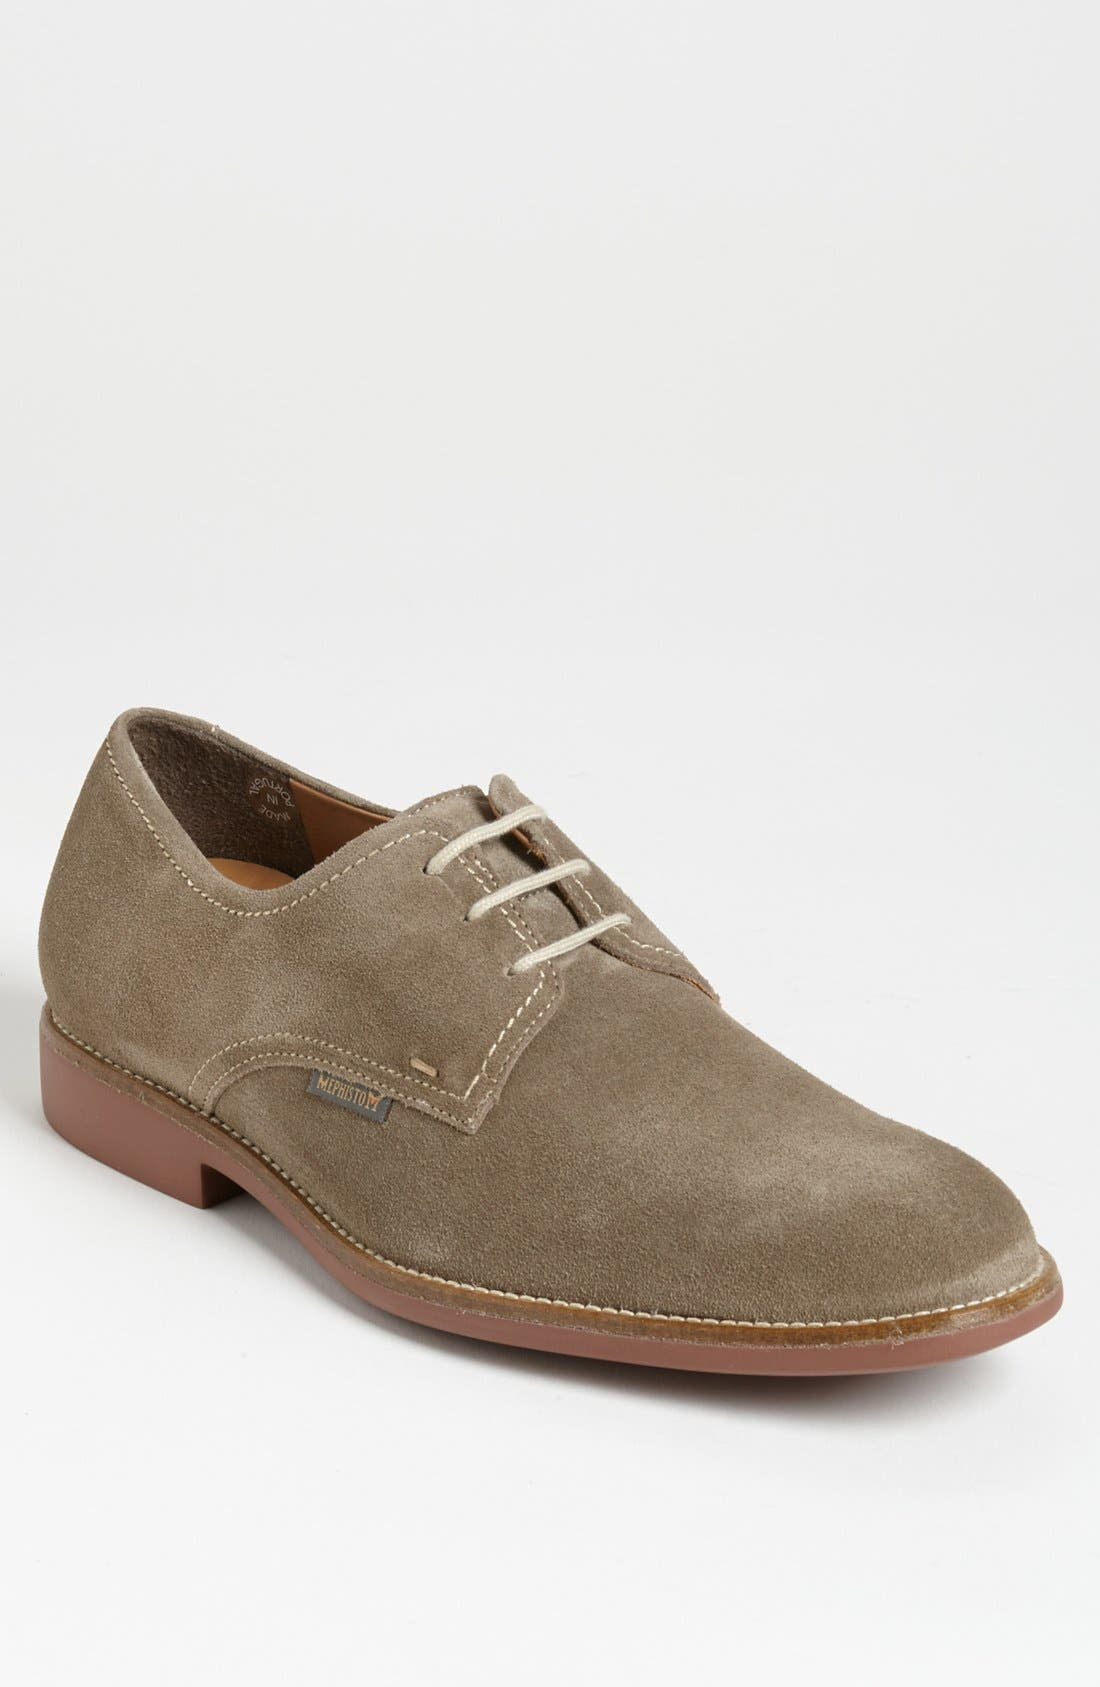 Alternate Image 1 Selected - Mephisto 'Fernio' Buck Shoe